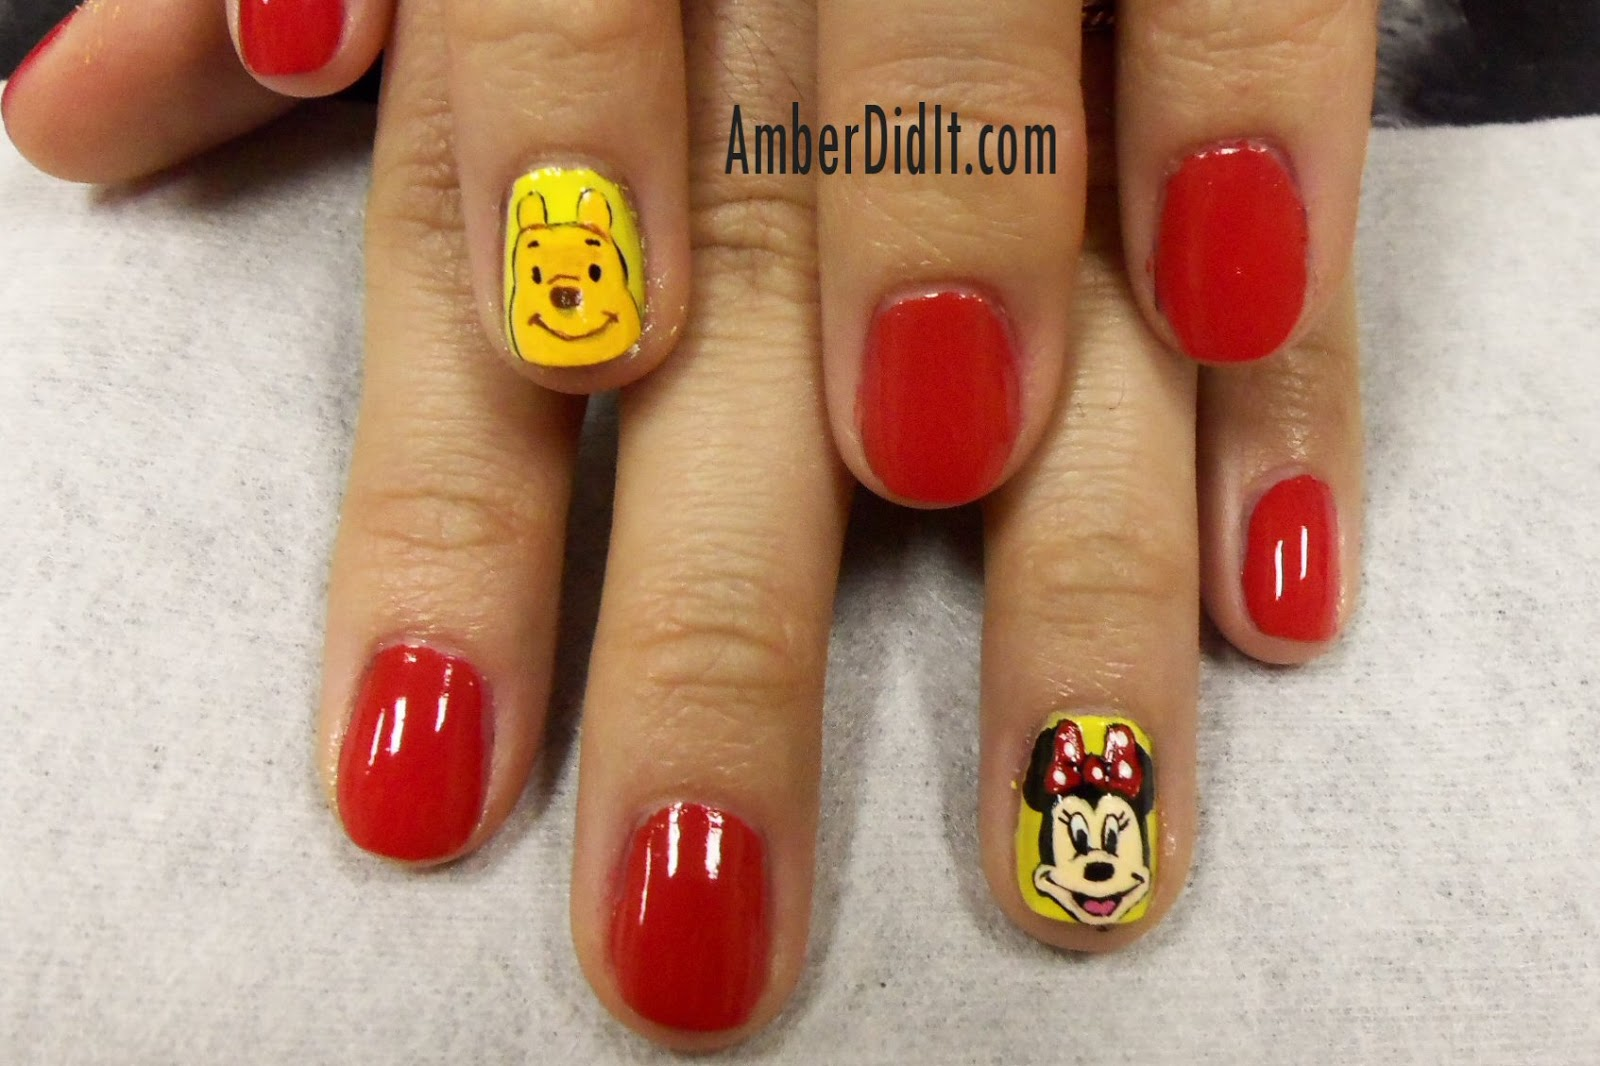 Amber Did It Cartoon Nail Artmickey Minnie Winnie The Pooh